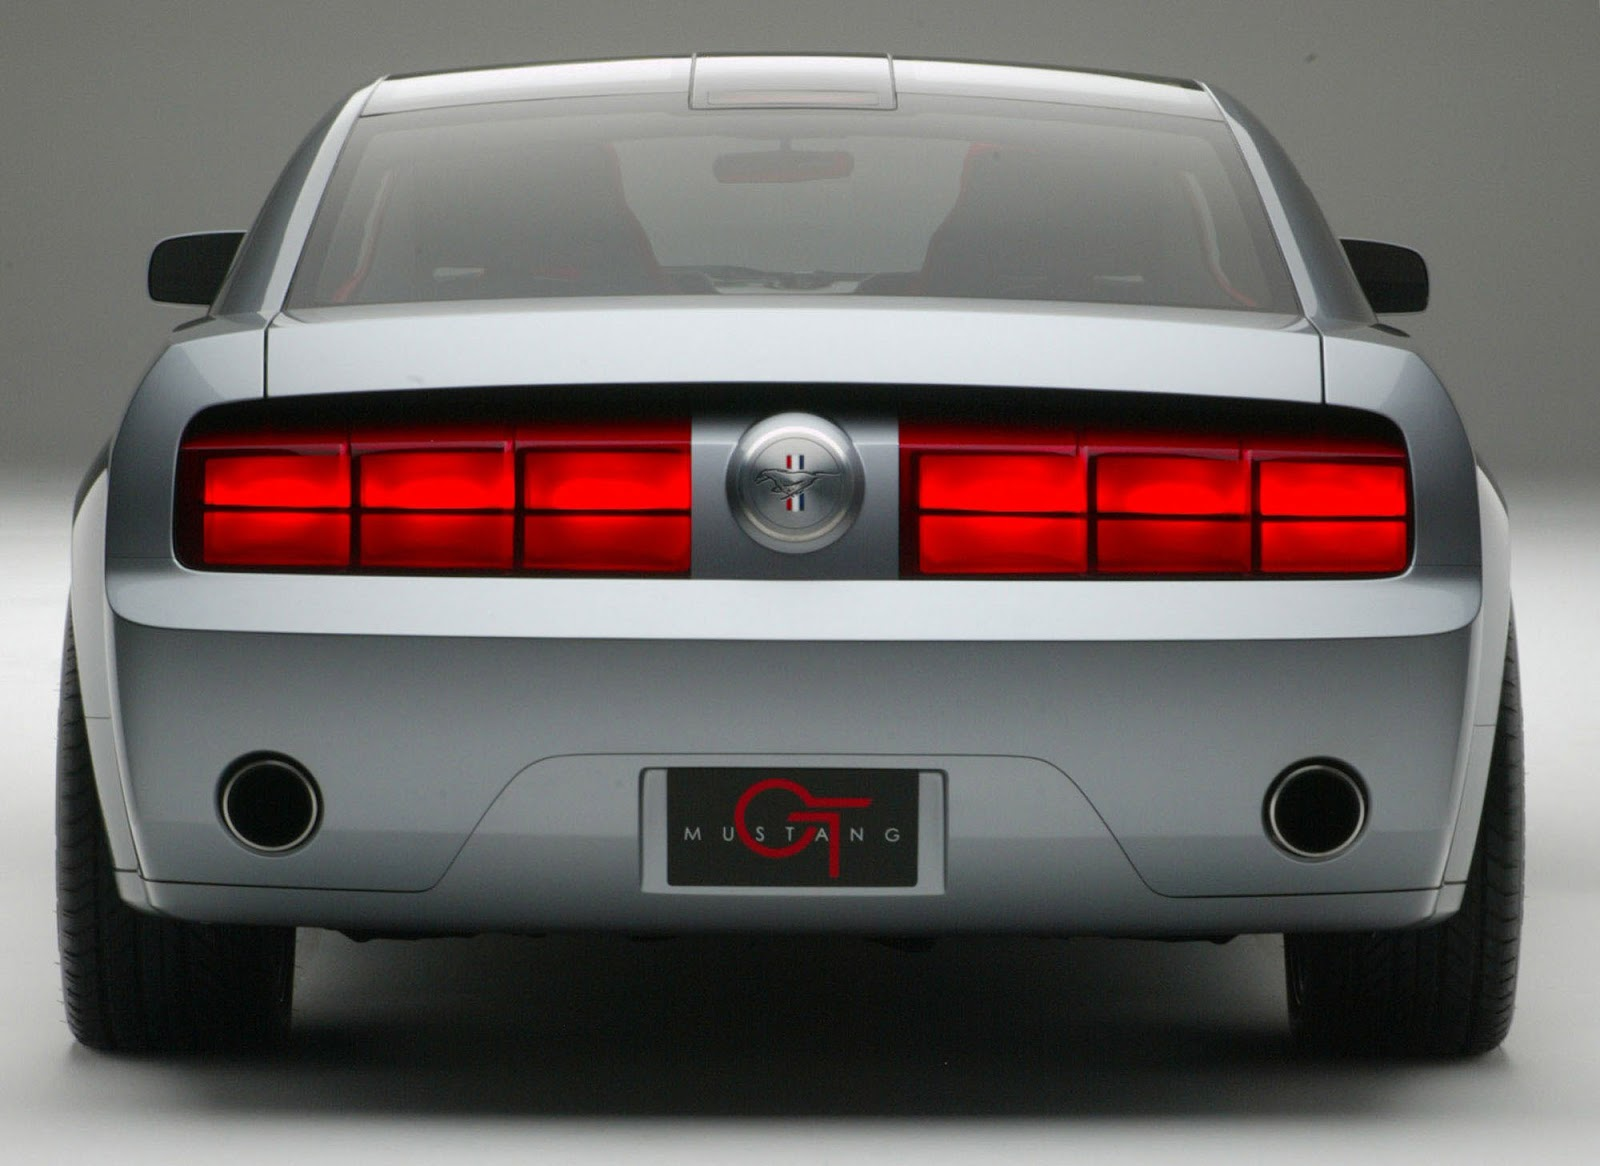 2017 Ford Mustang Mach 1 Concept photo - 2